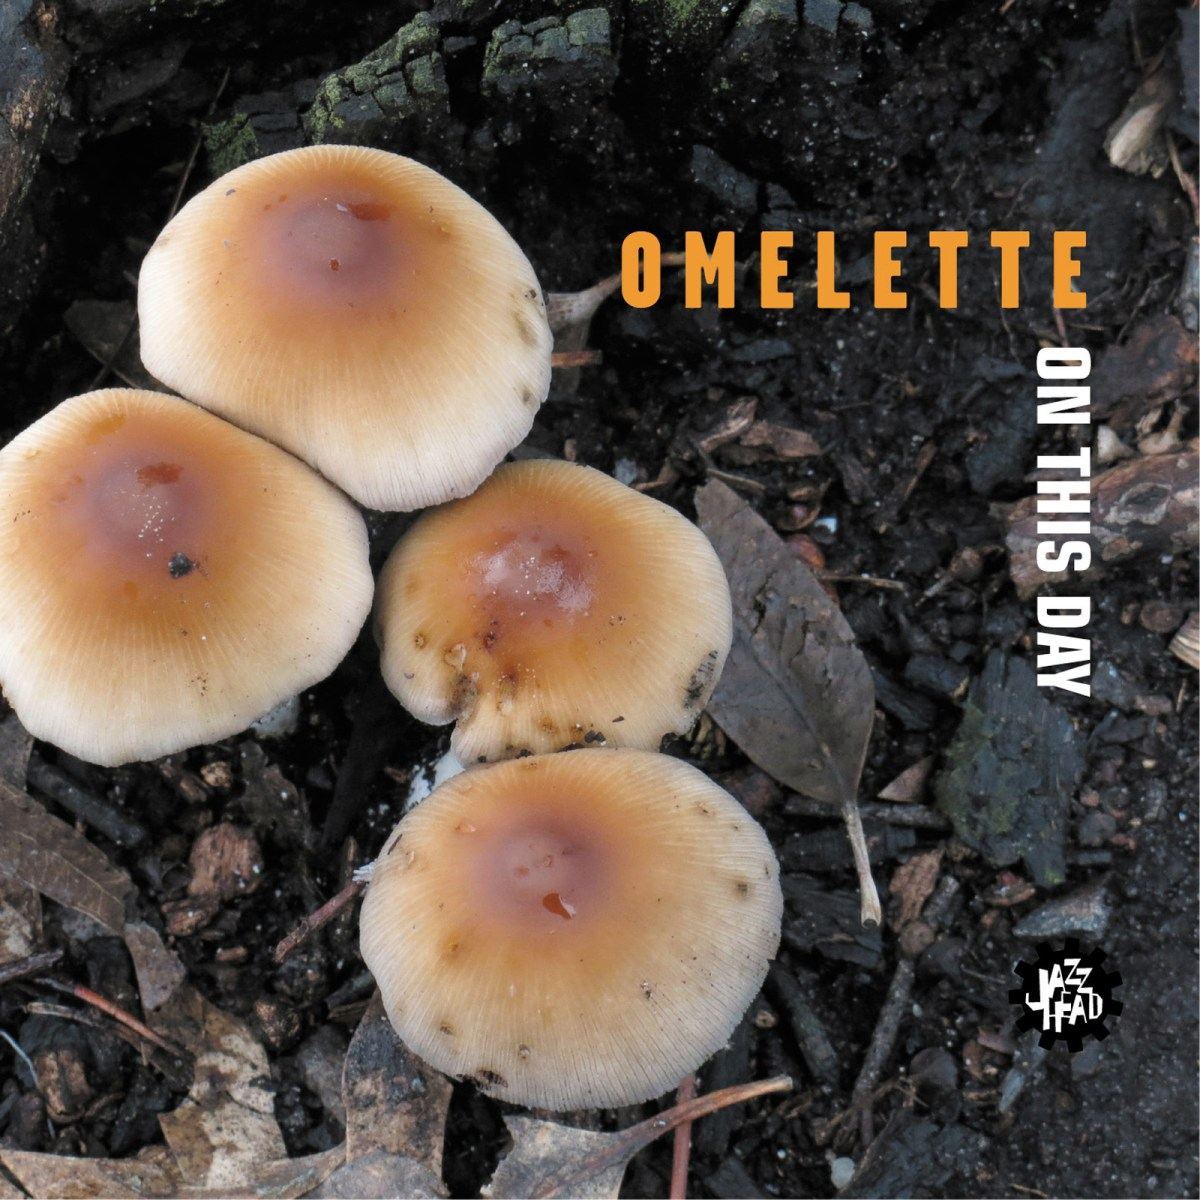 Album review: On This Day (Omelette) by John Shand